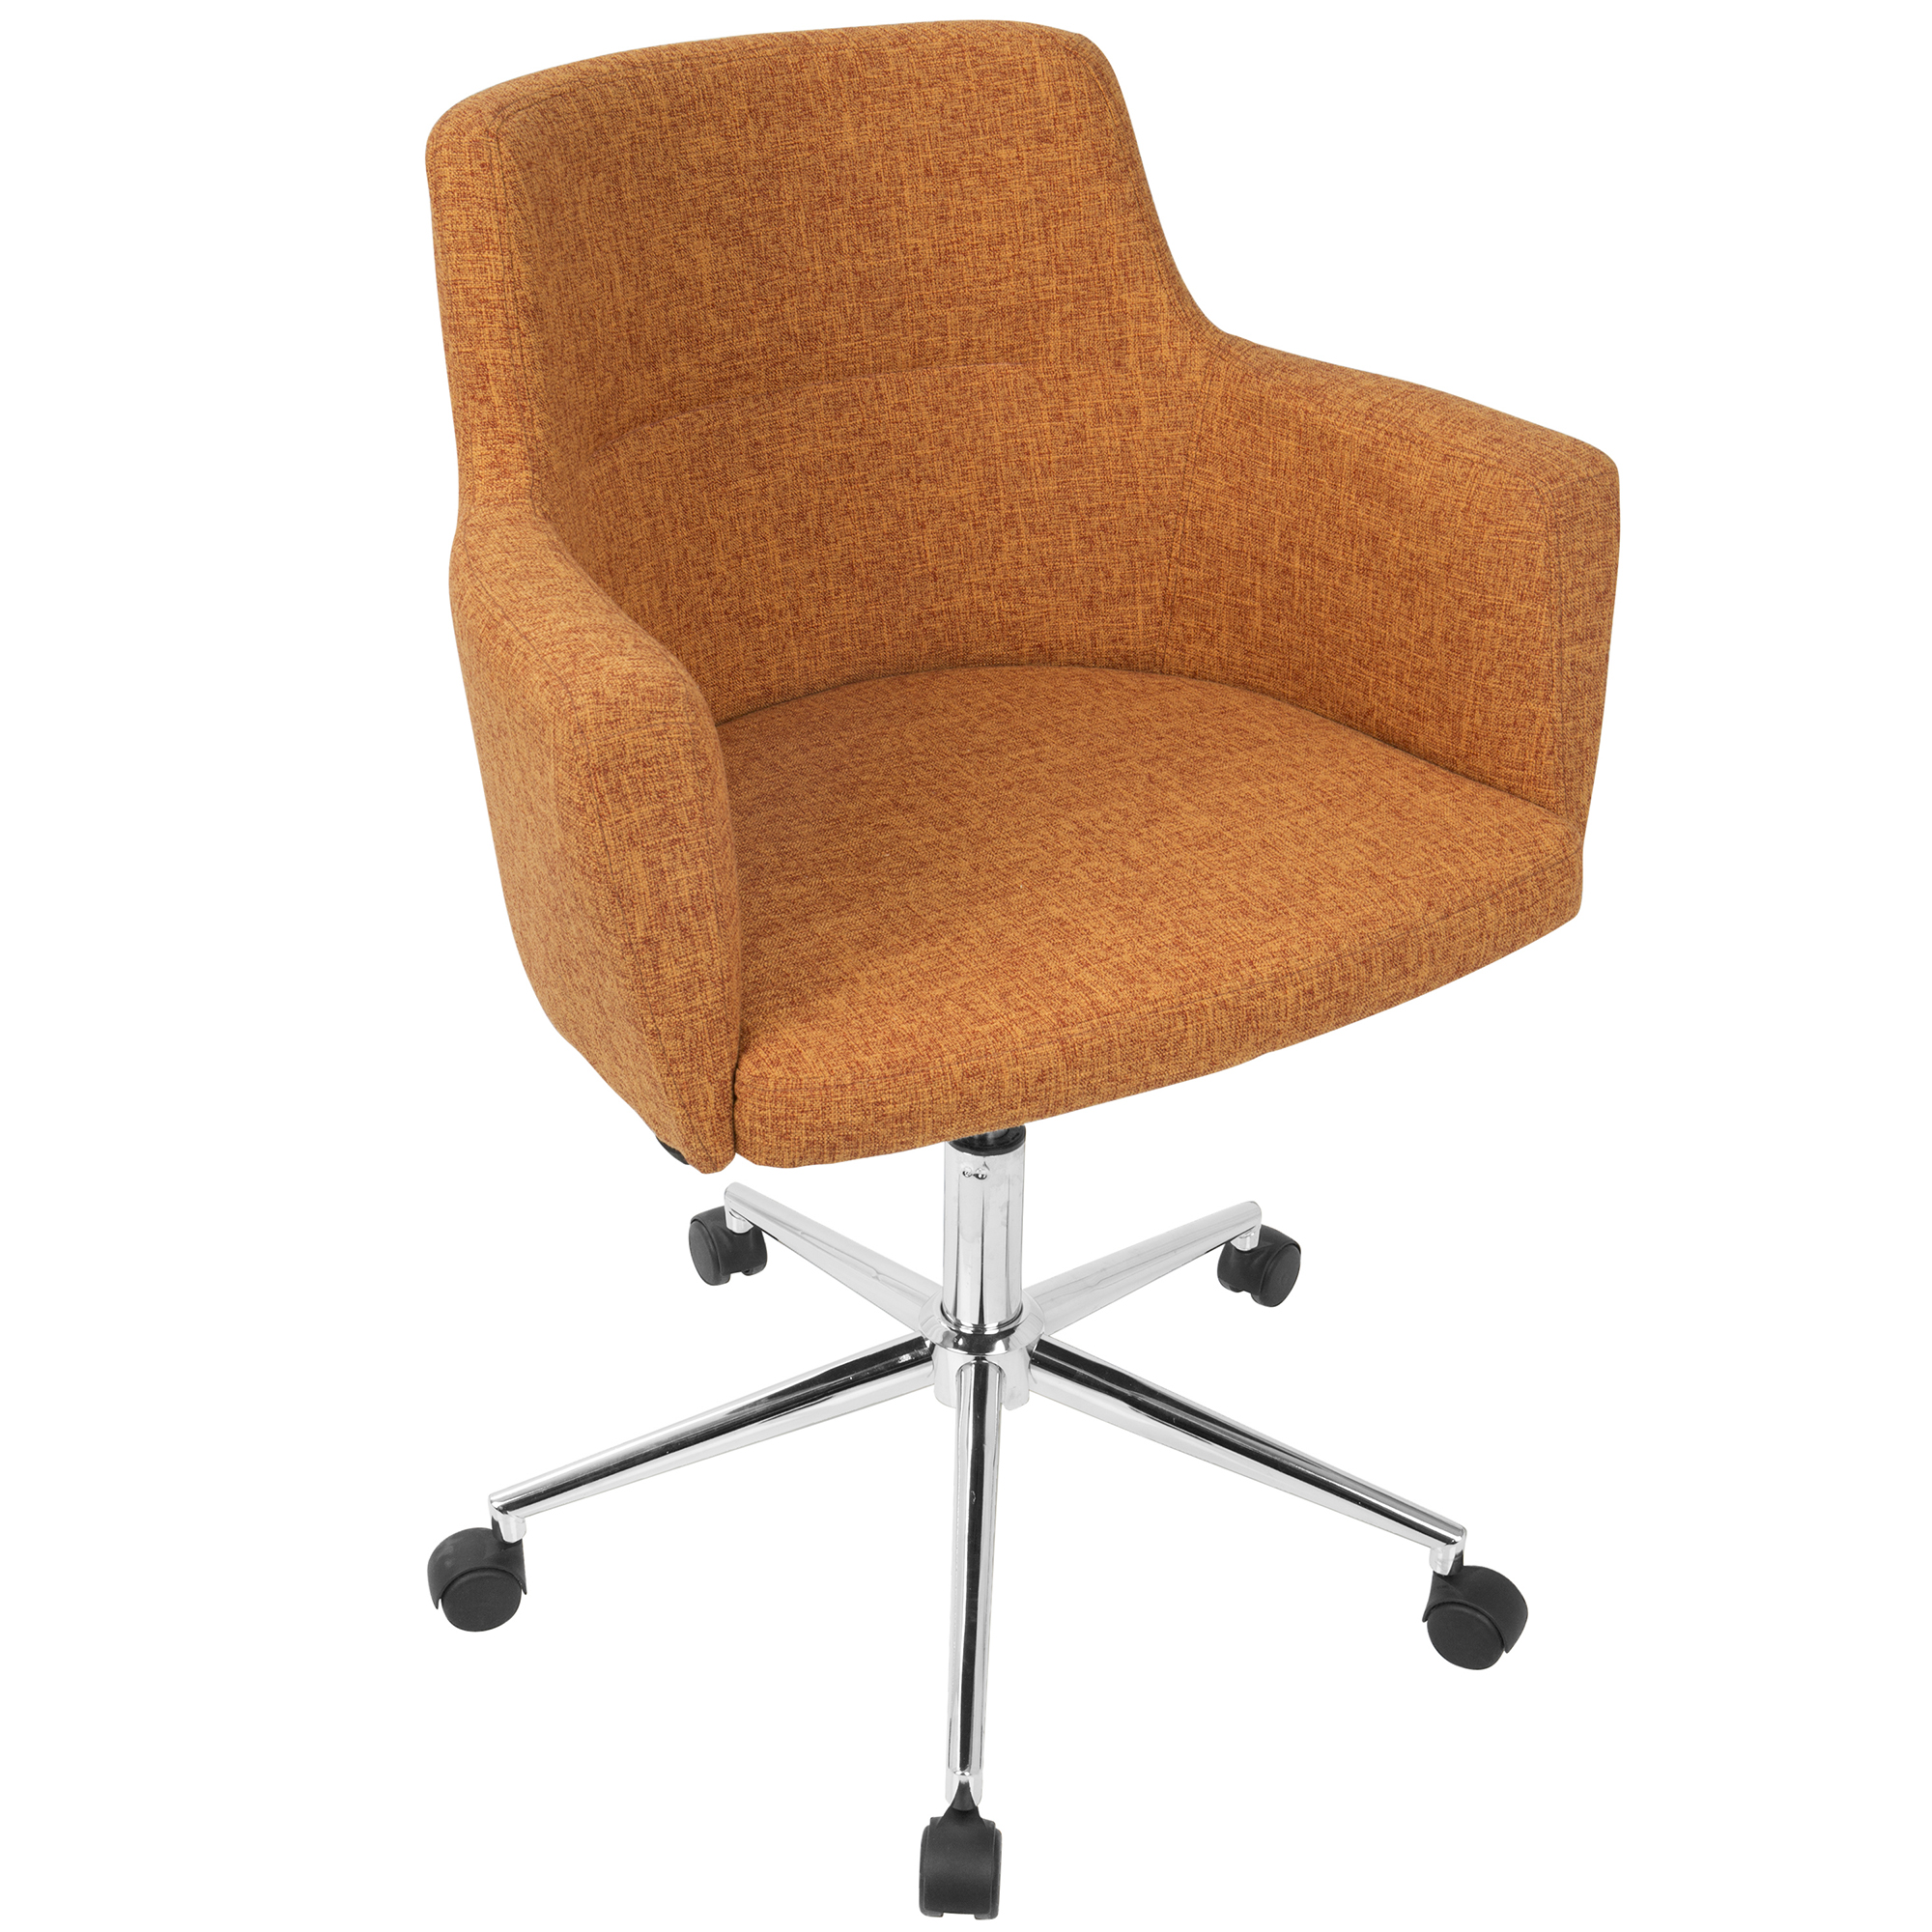 Andrew Contemporary Adjustable Office Chair in Orange by Lumisource by LumiSource